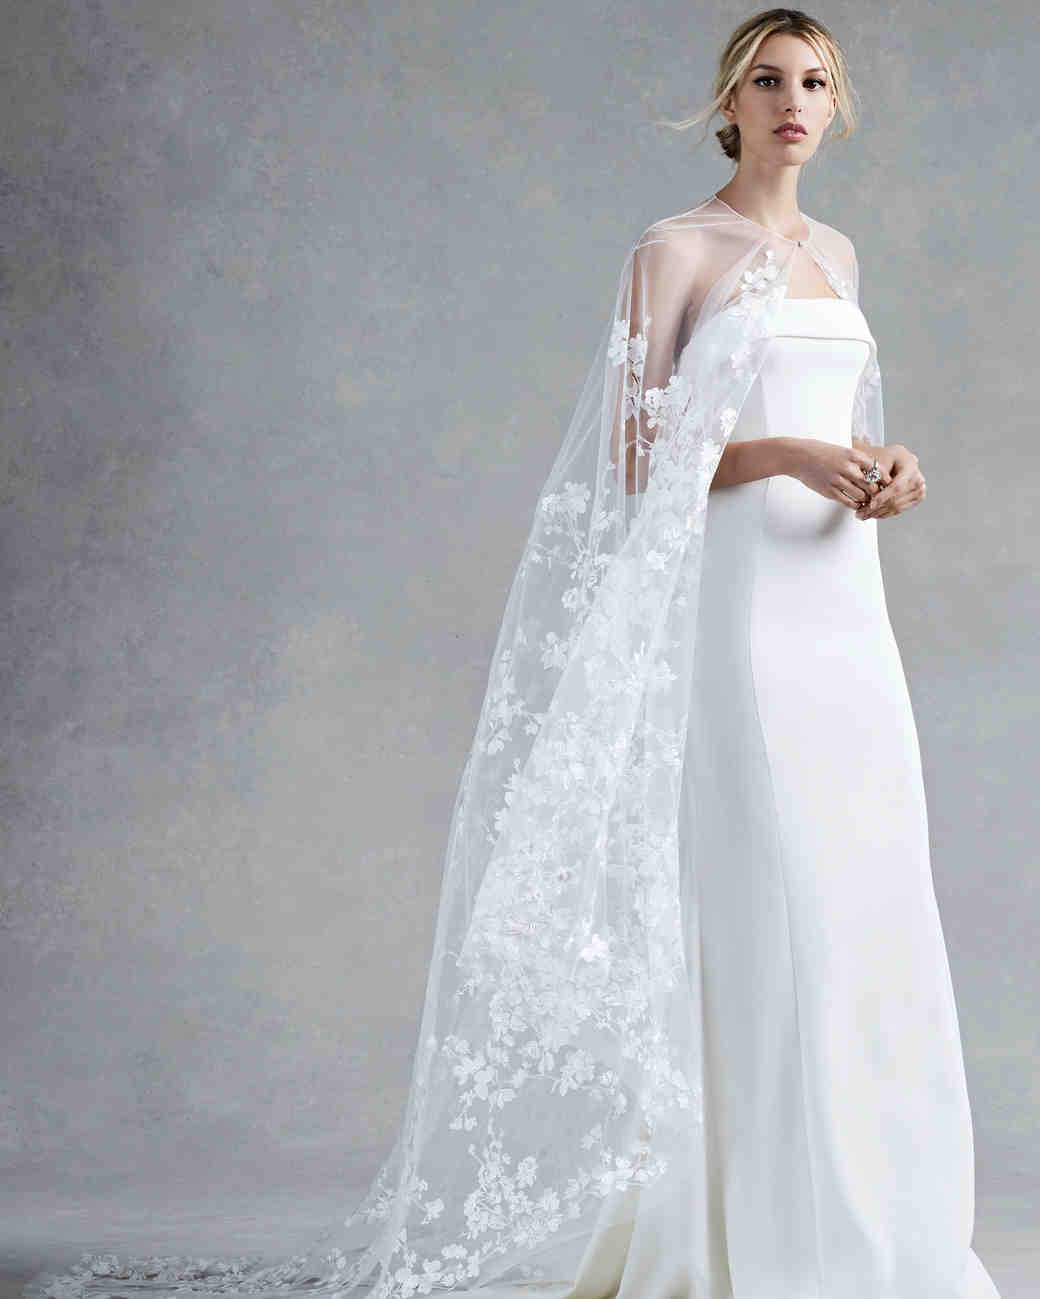 Oscar de la Renta Fall 2017 Wedding Dress Collection